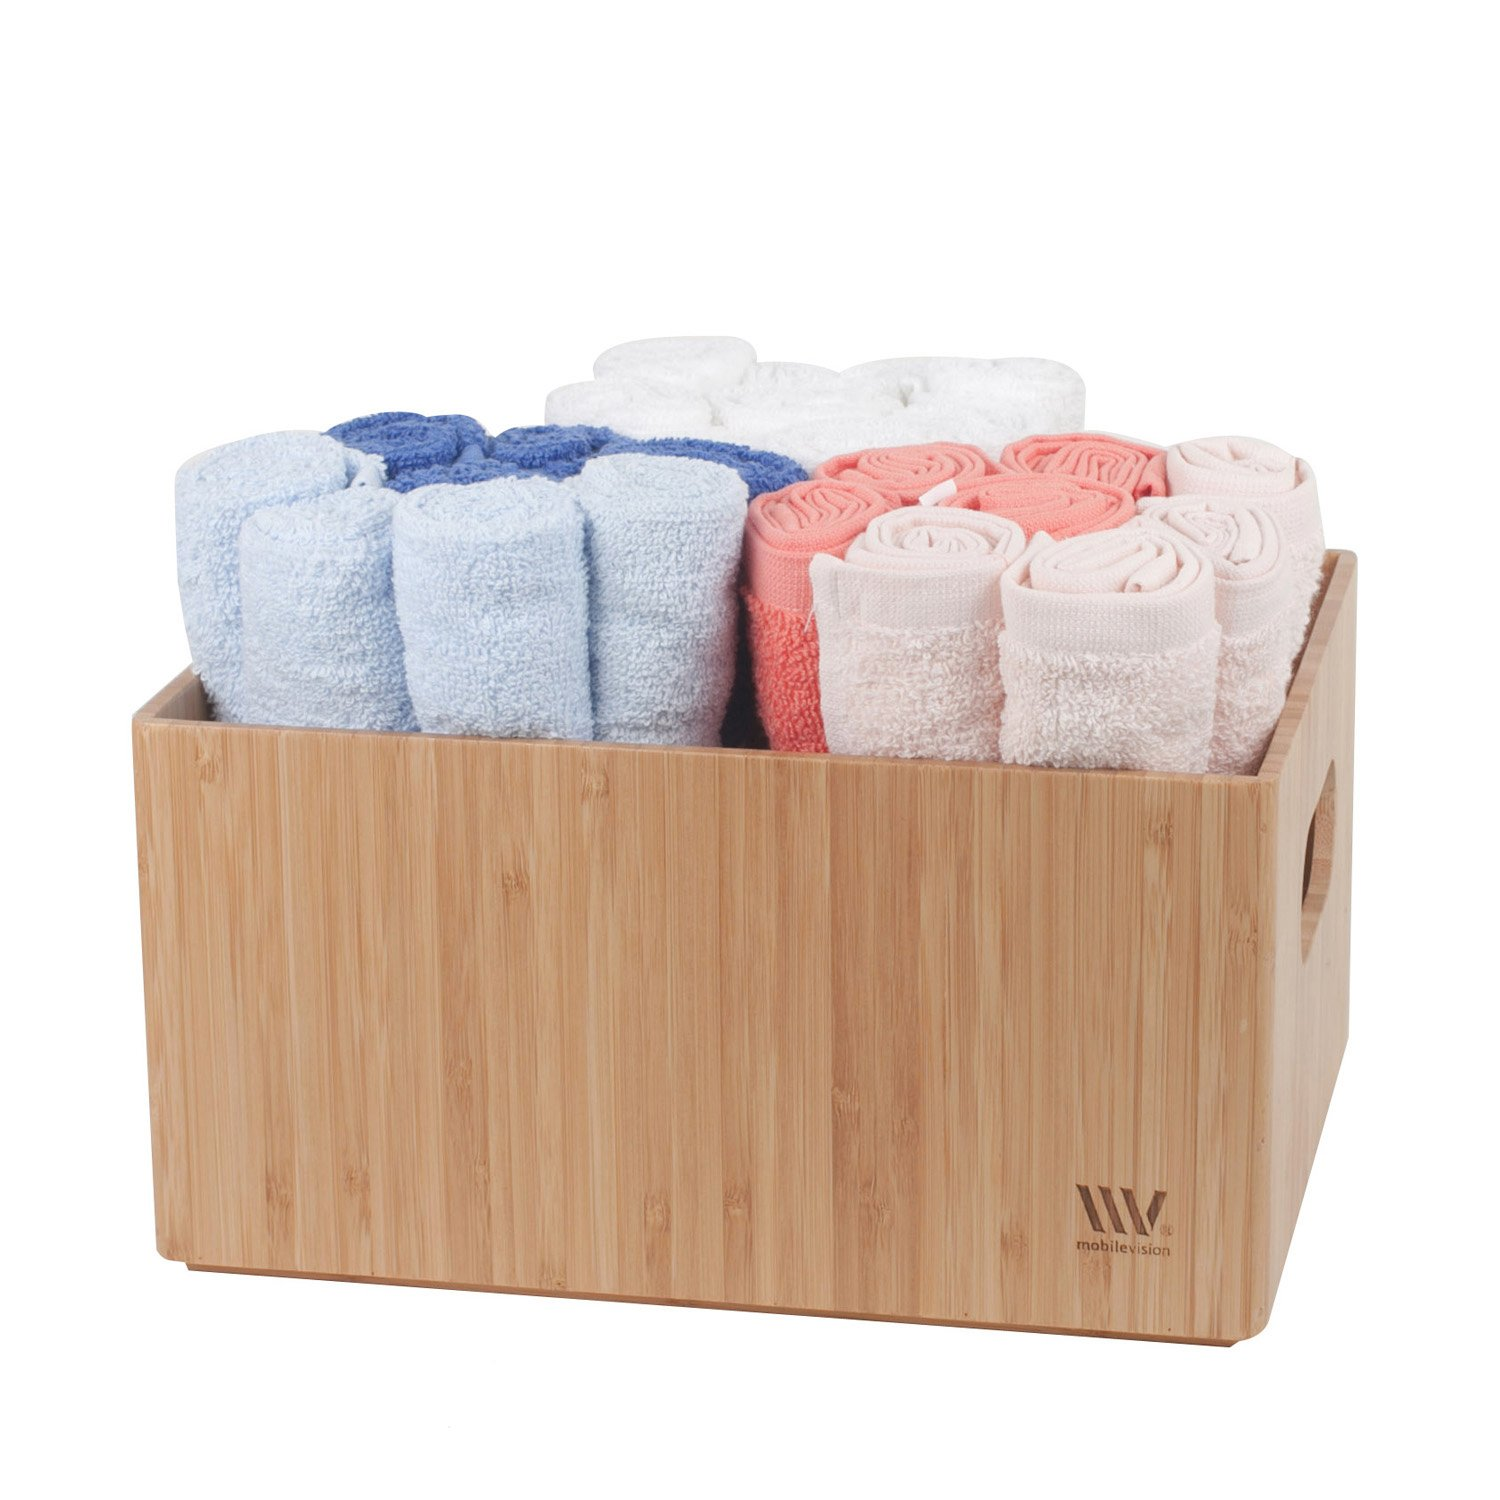 """MobileVision Bamboo Bathroom Bin Organizer for Toiletries, Make Up & Cosmetics, Brushes, Styling Tools & Products, Cleaning Supplies, Toilet Paper 9"""" x 12"""" x 6"""""""